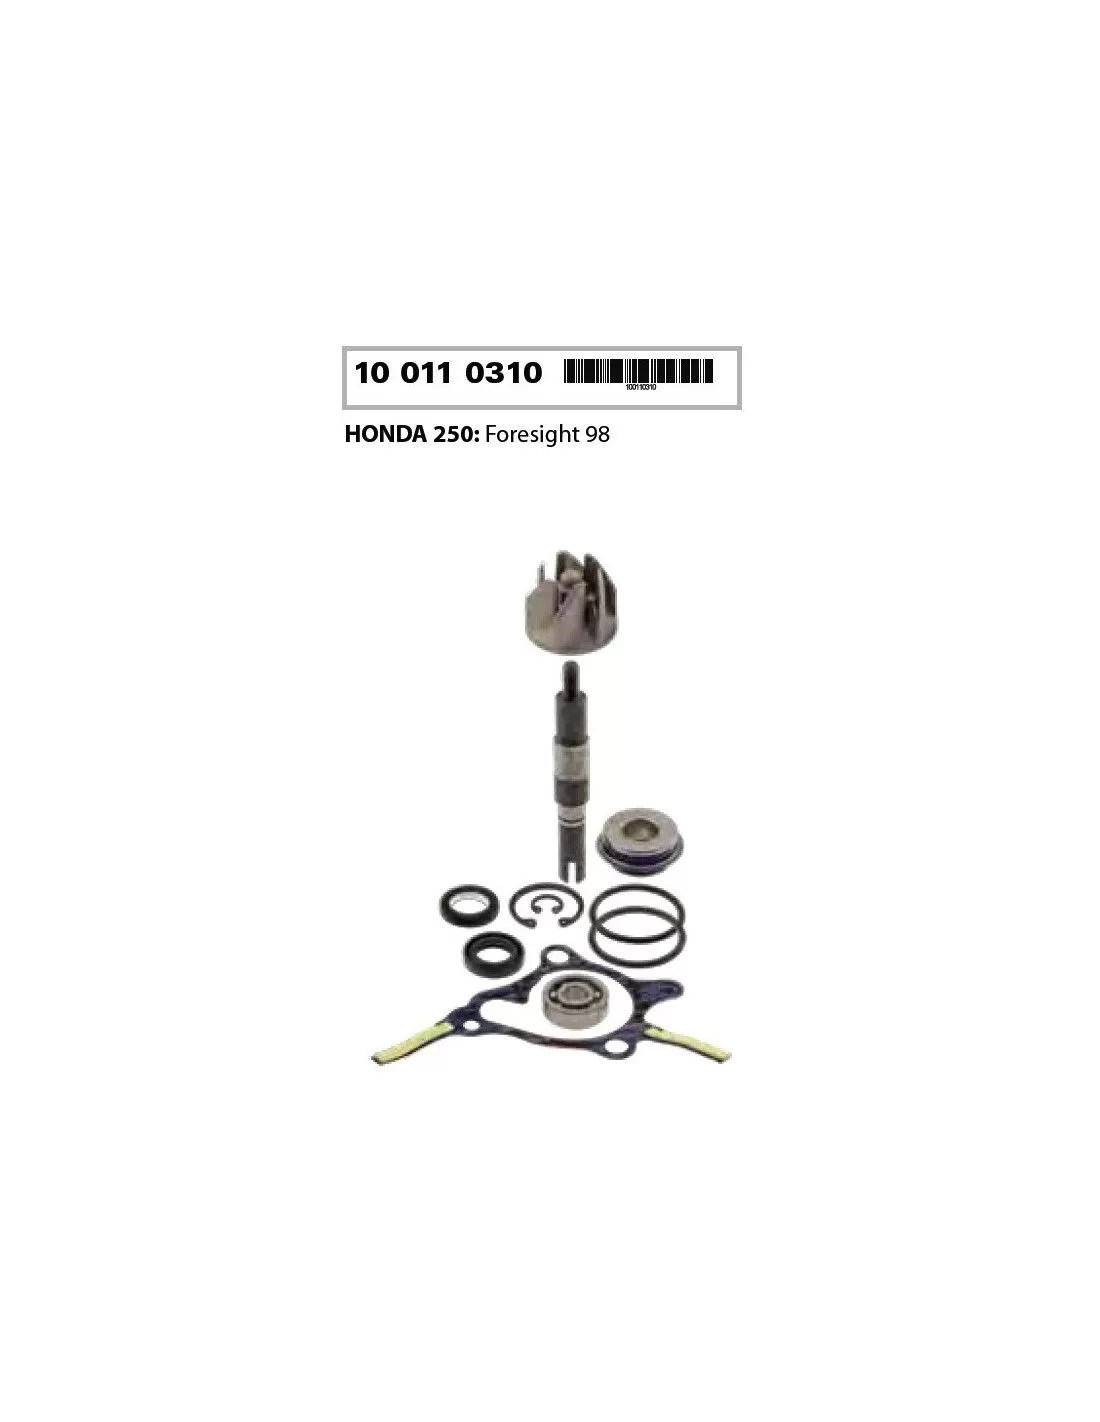 WATER PUMP HONDA FORESIGHT 250 COMMERCIAL REPLACEMENT KIT